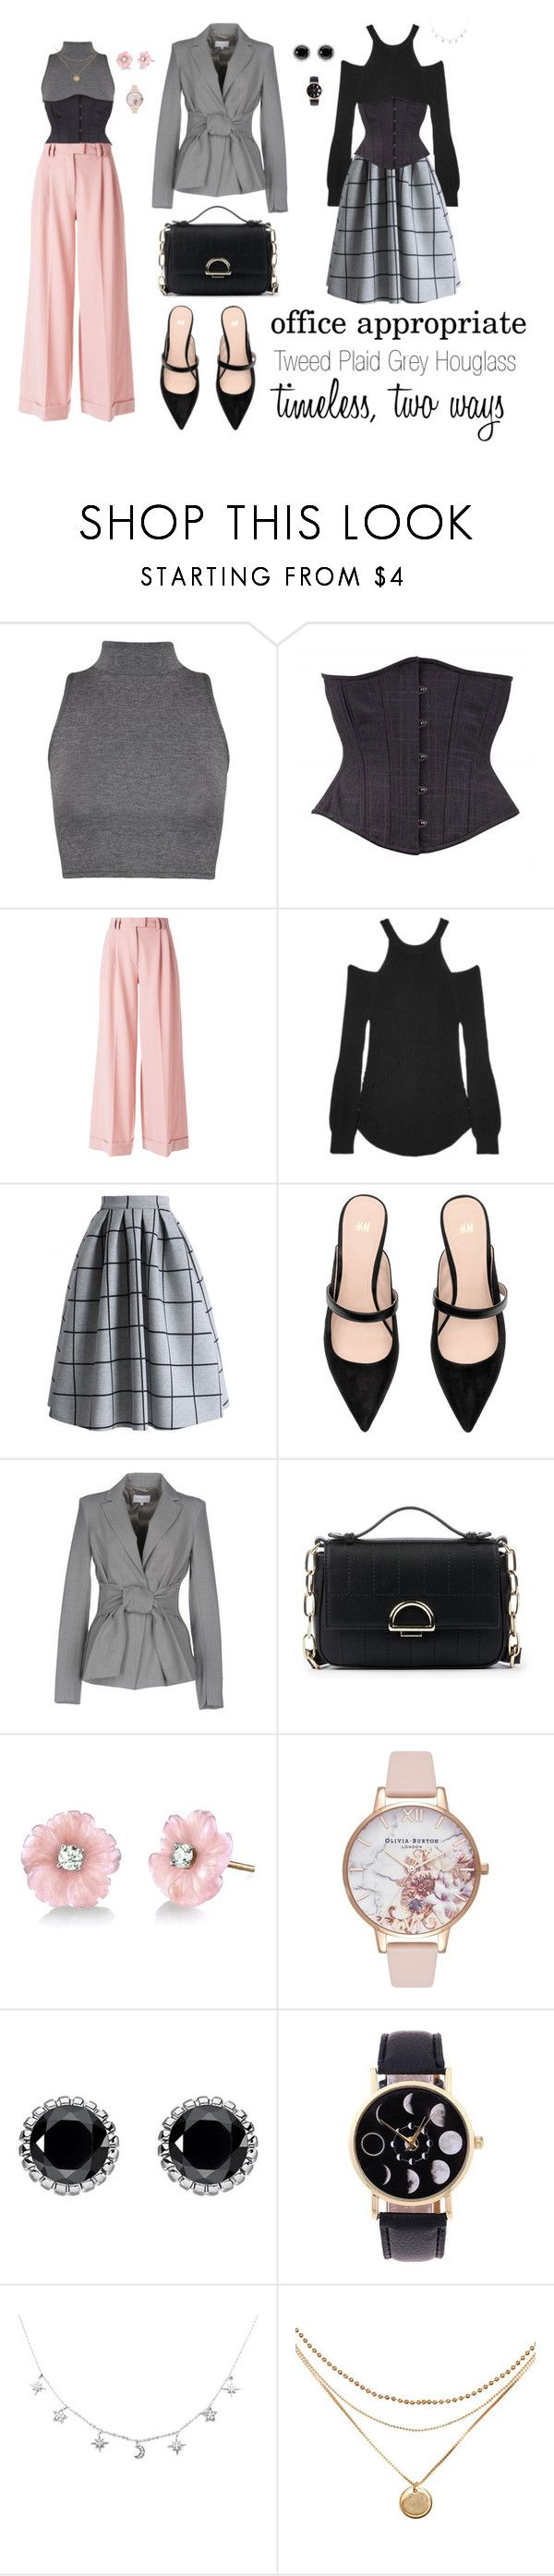 """Office Attire with the Tweed Plaid Grey Hourglass"" by timeless-trends on Polyvore featuring WearAll, VIVETTA, Splendid, Chicwish, Patrizia Pepe, Sole Society, Irene Neuwirth, Olivia Burton and Thomas Sabo"